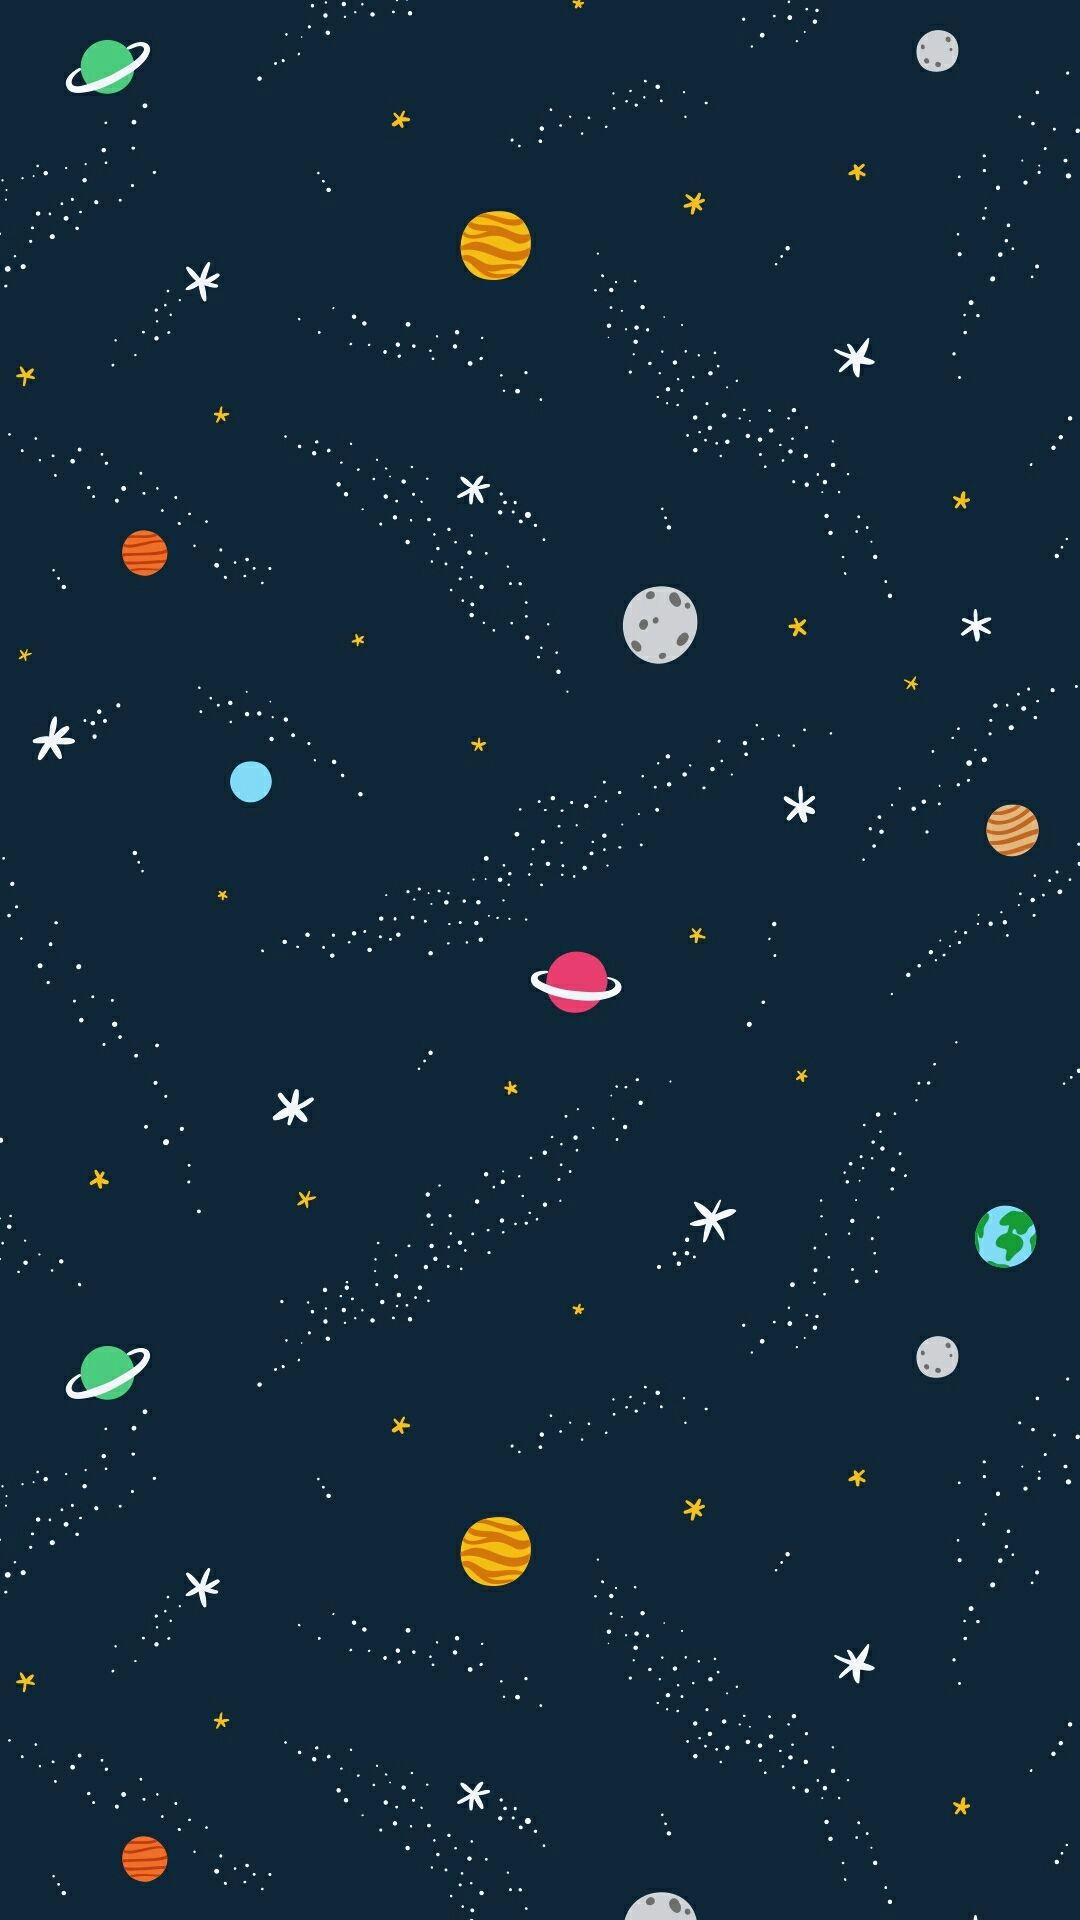 Vector cartoon style illustration of Solar system